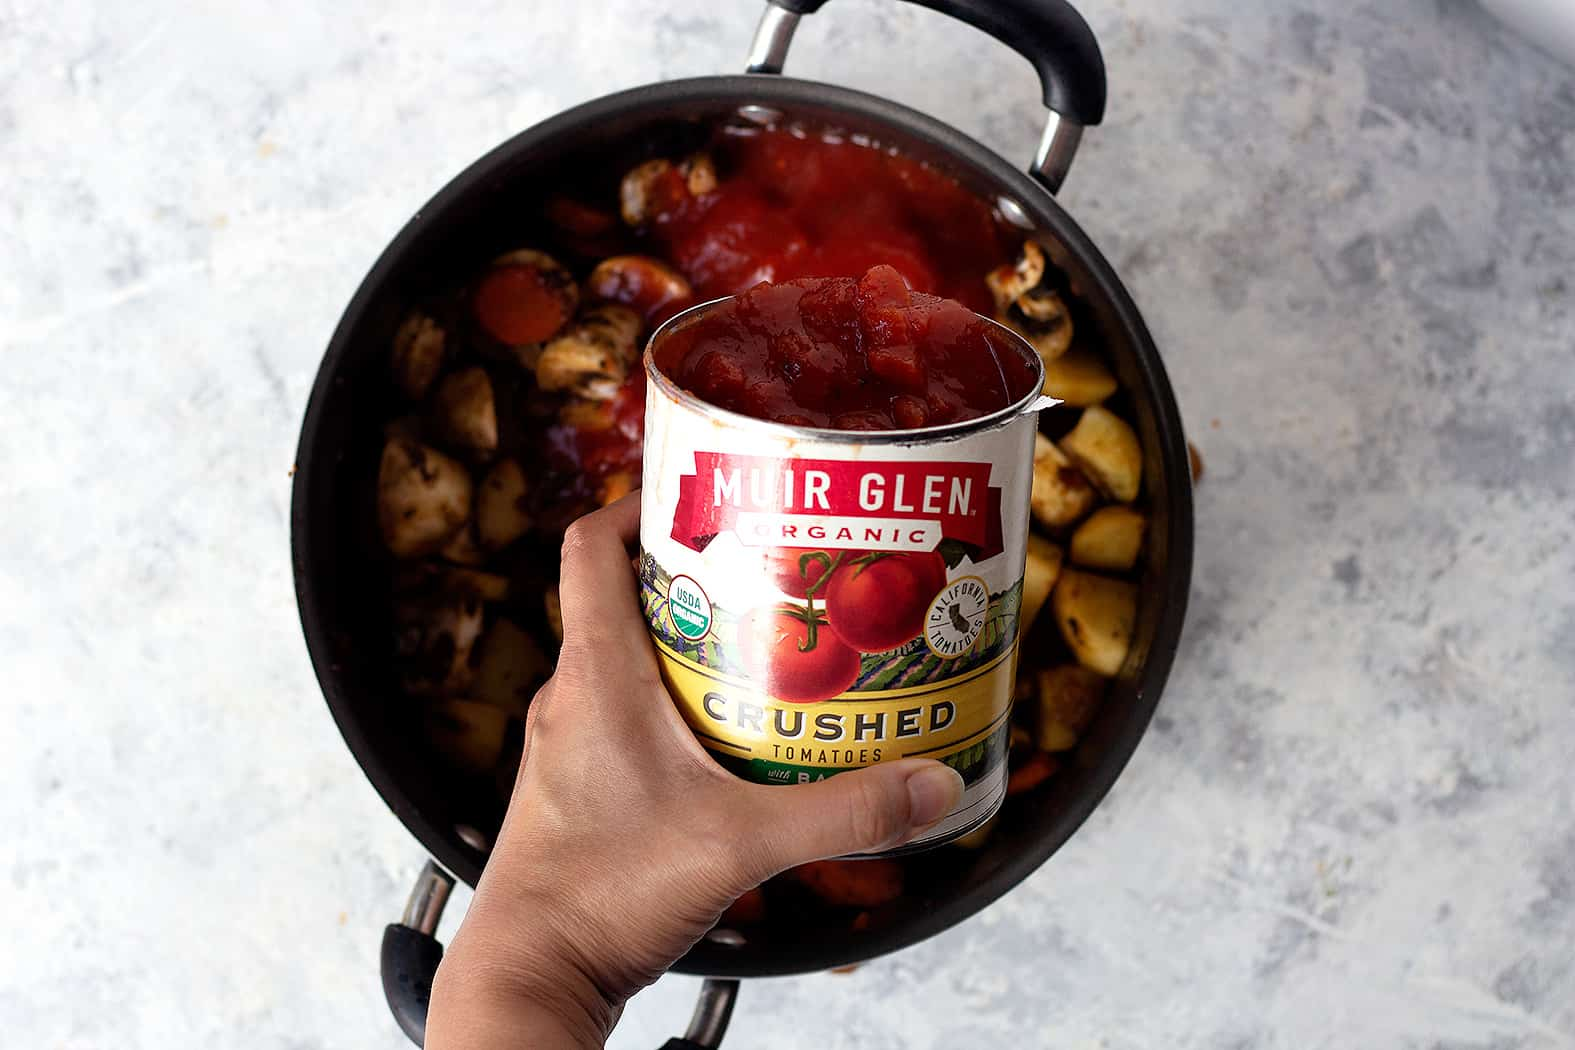 Pour a can of tomatoes into the beef and potato mixture to make the stew.